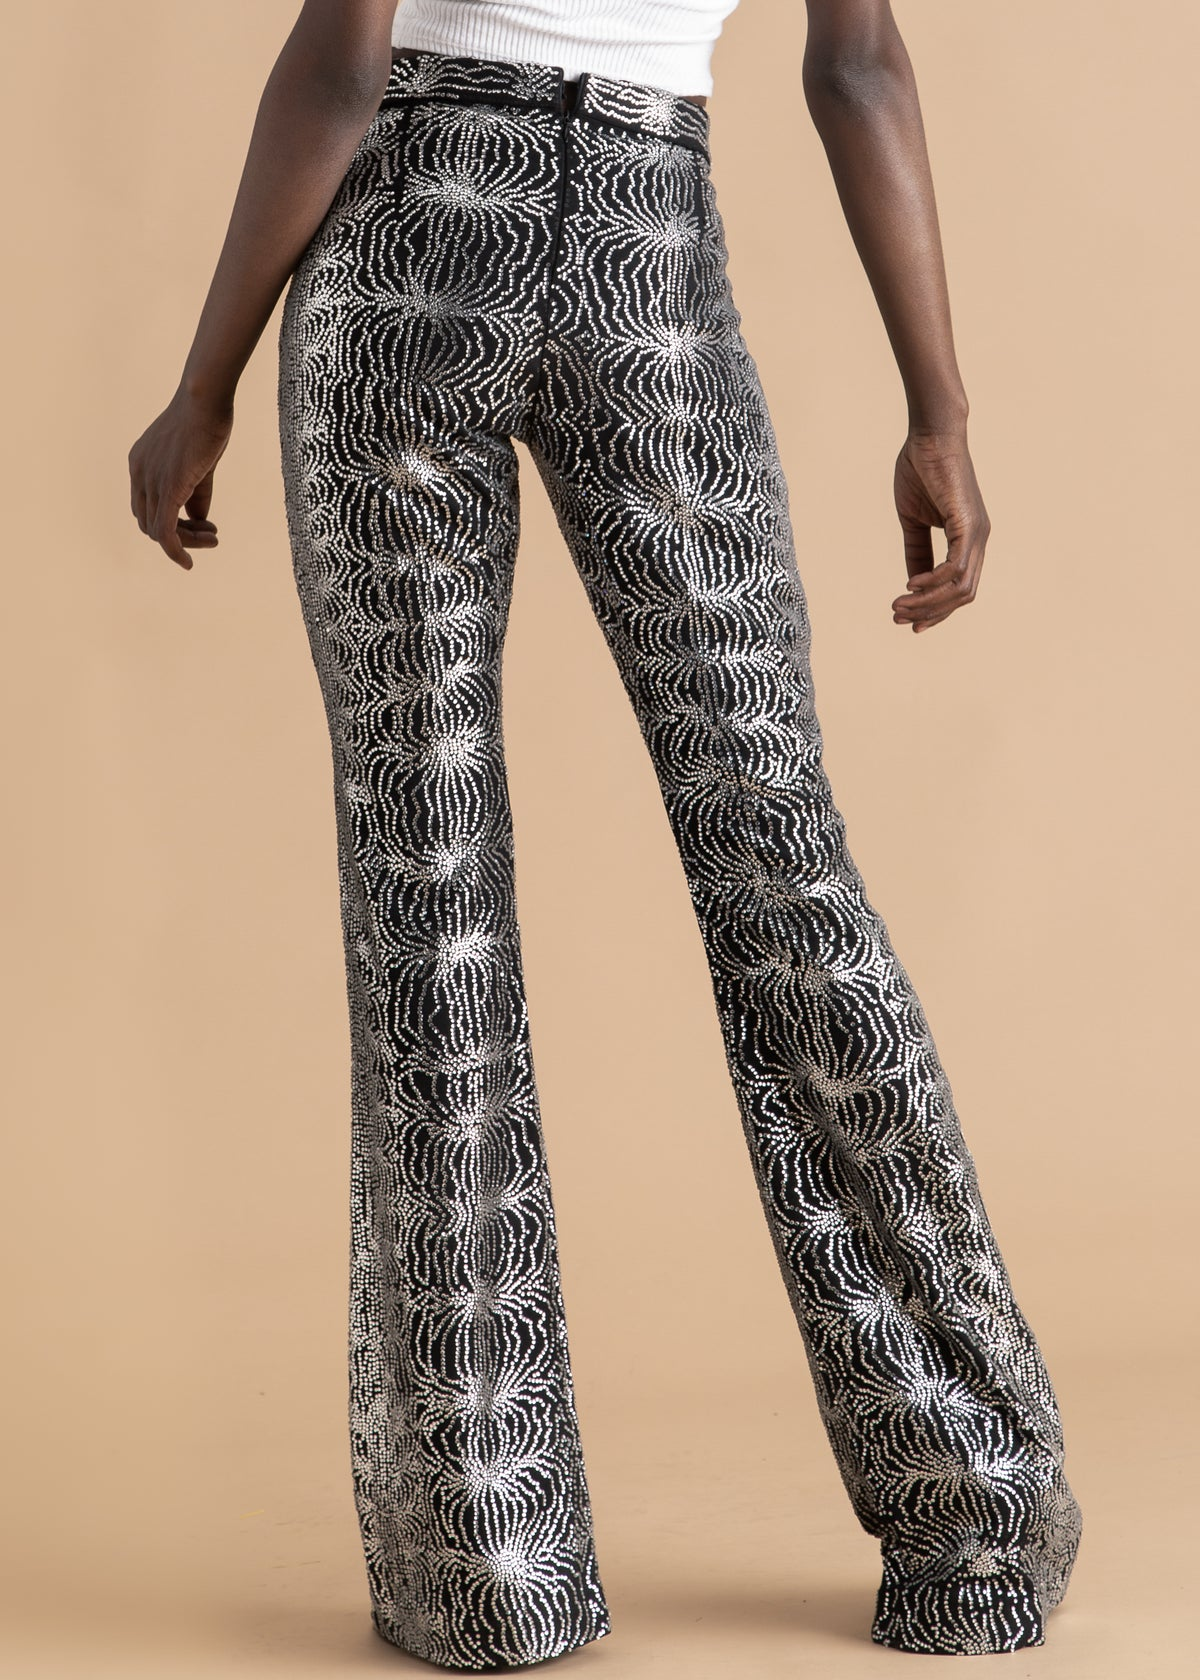 Onalaja Black and silver high-waisted embroidered pant